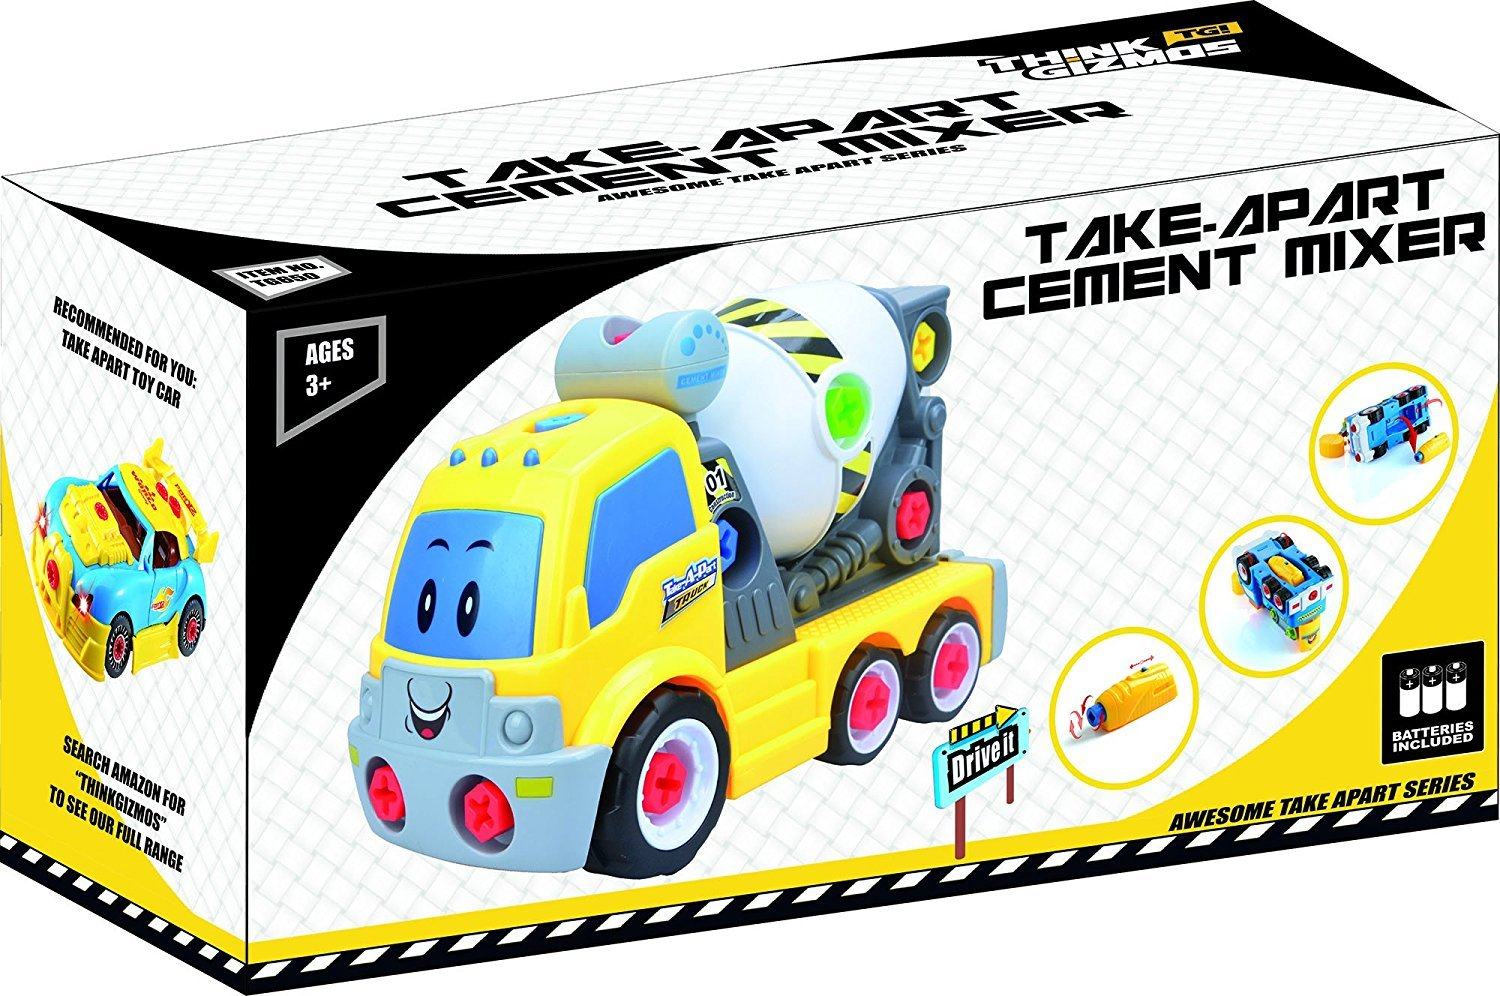 Think Gizmos Take Apart Toys Range Build Your Own Toy Kit For Boys No Disassemble Lego Ideas Proposal Makes It Easy To And Girls Aged 3 4 5 6 7 8 Cement Mixer Games